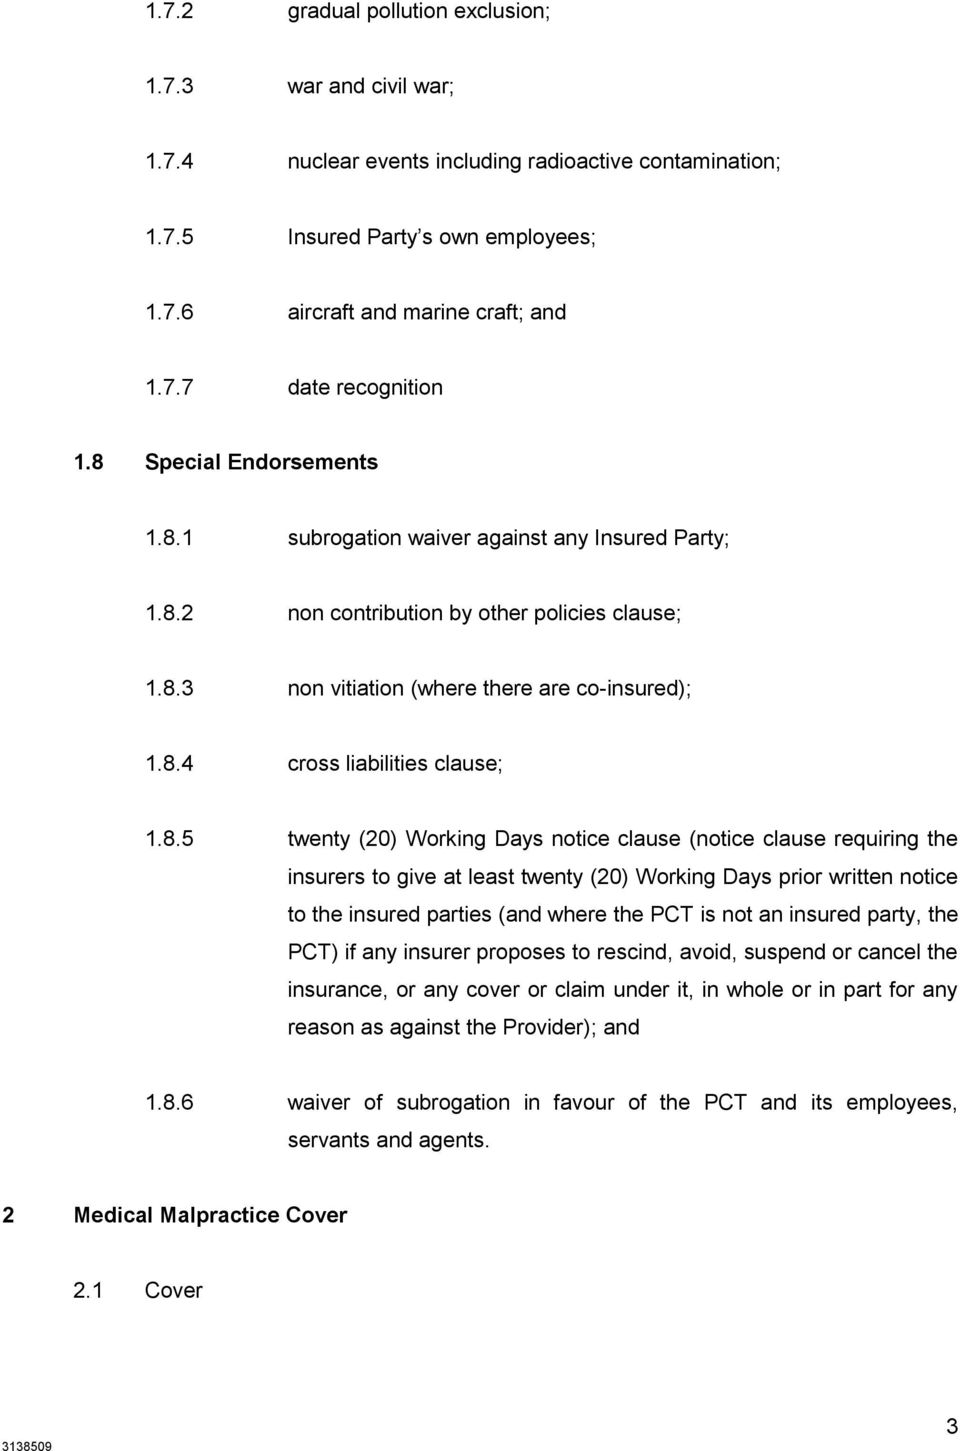 8.5 twenty (20) Working Days notice clause (notice clause requiring the insurers to give at least twenty (20) Working Days prior written notice to the insured parties (and where the PCT is not an